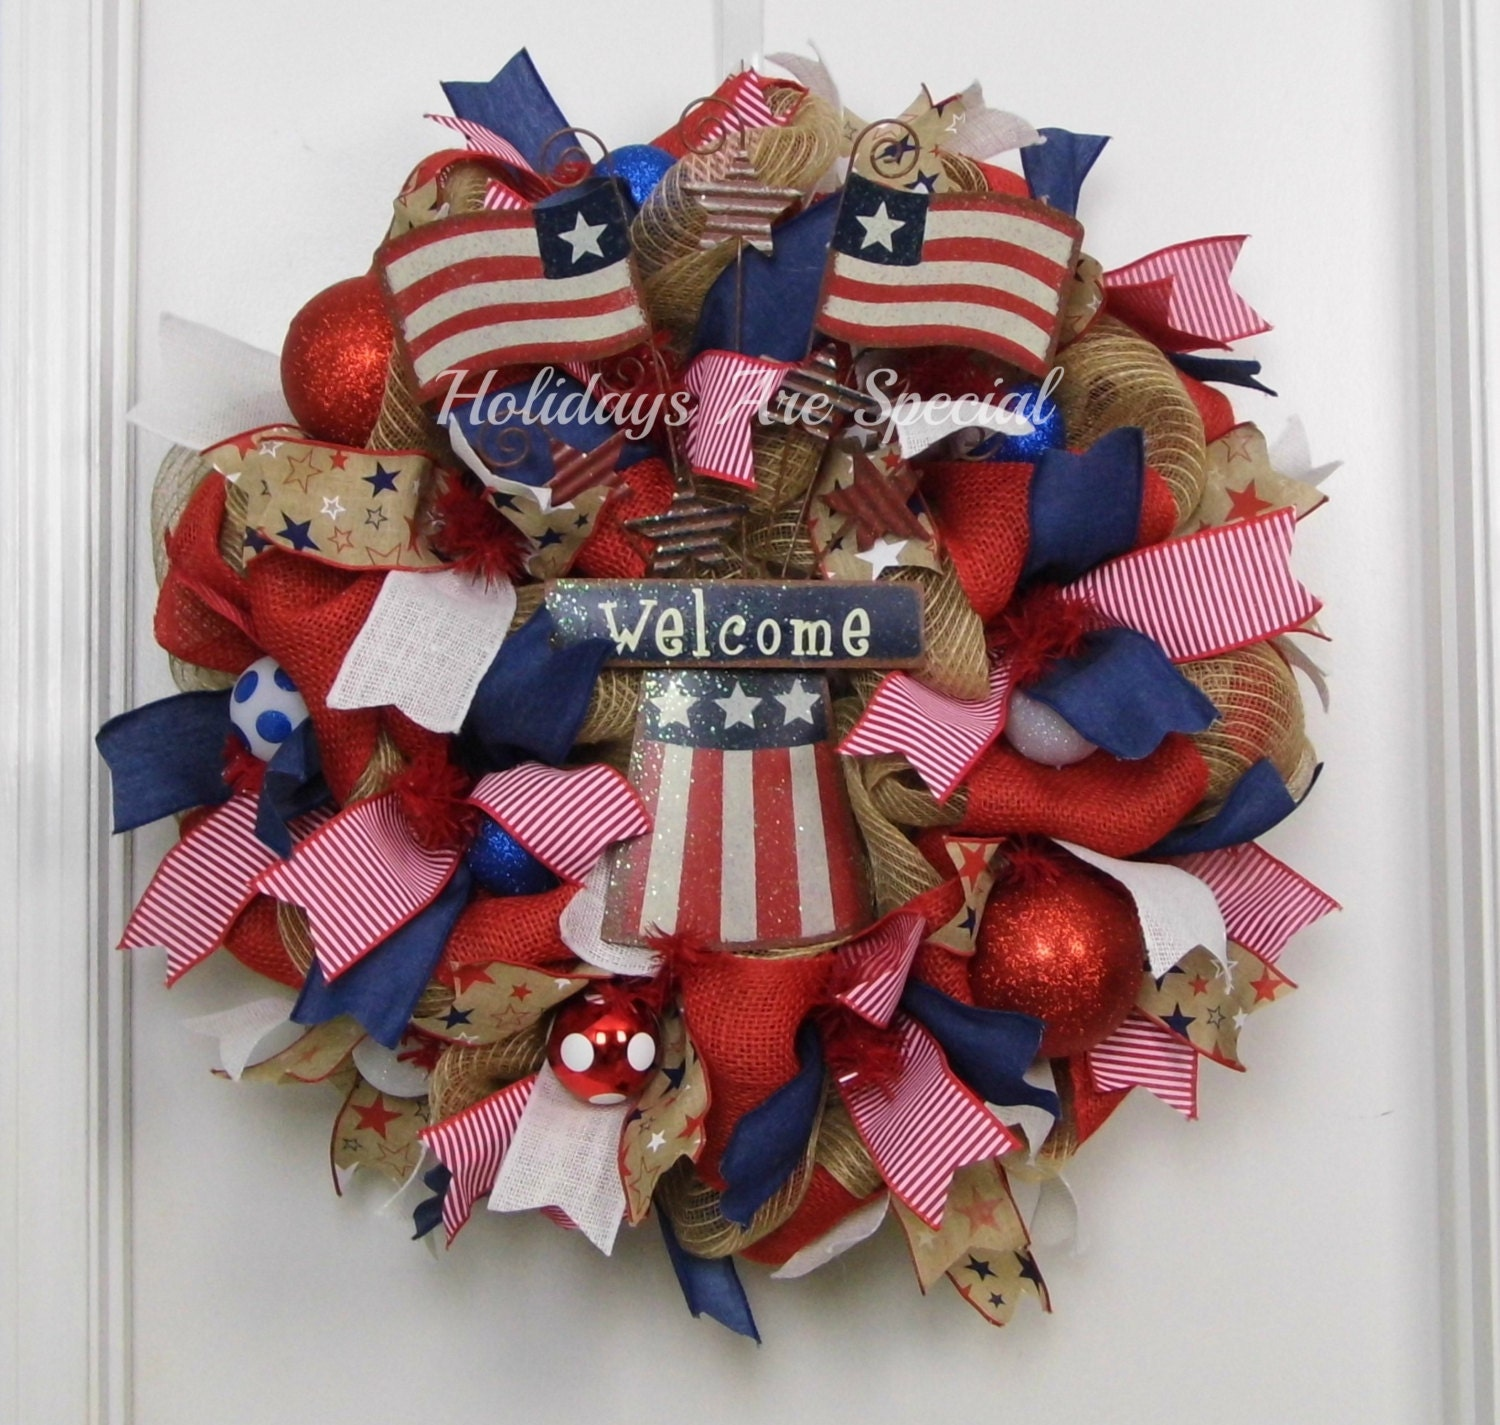 Mesh Wreath Patriotic Patriotic Wreath Welcome Wreath Red